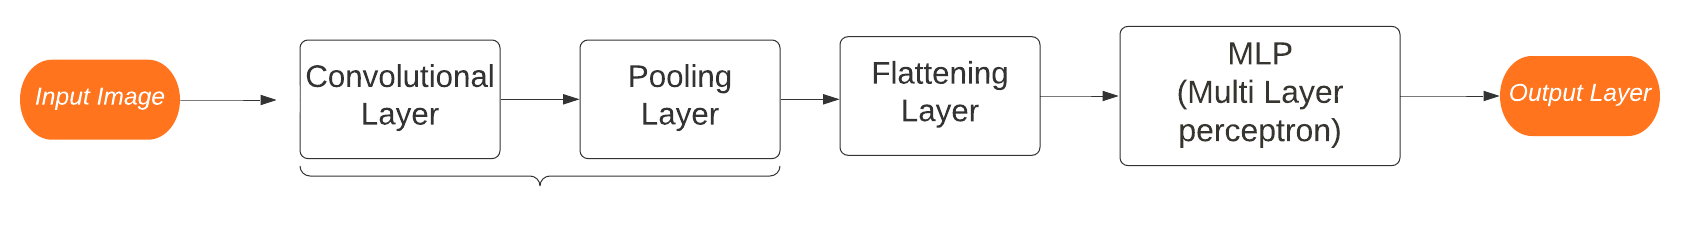 image recognition path